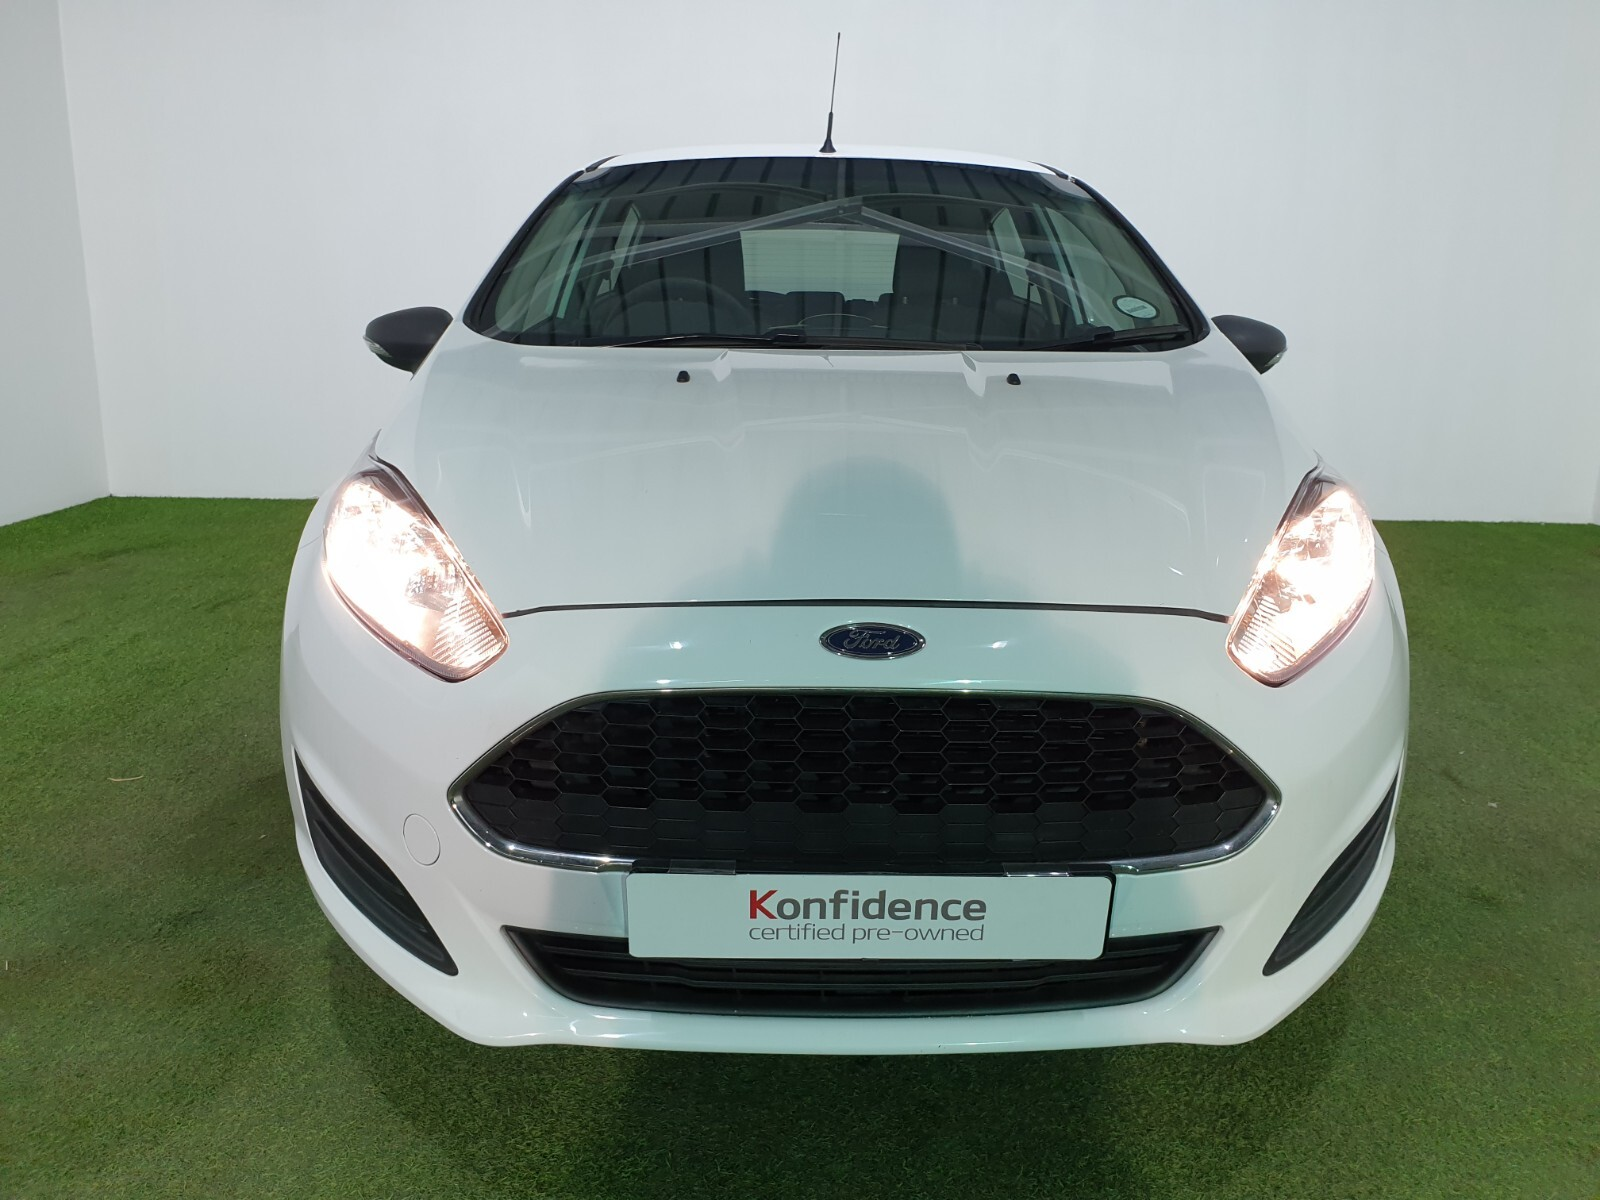 FORD 1.4 AMBIENTE 5 Dr Johannesburg 7327079